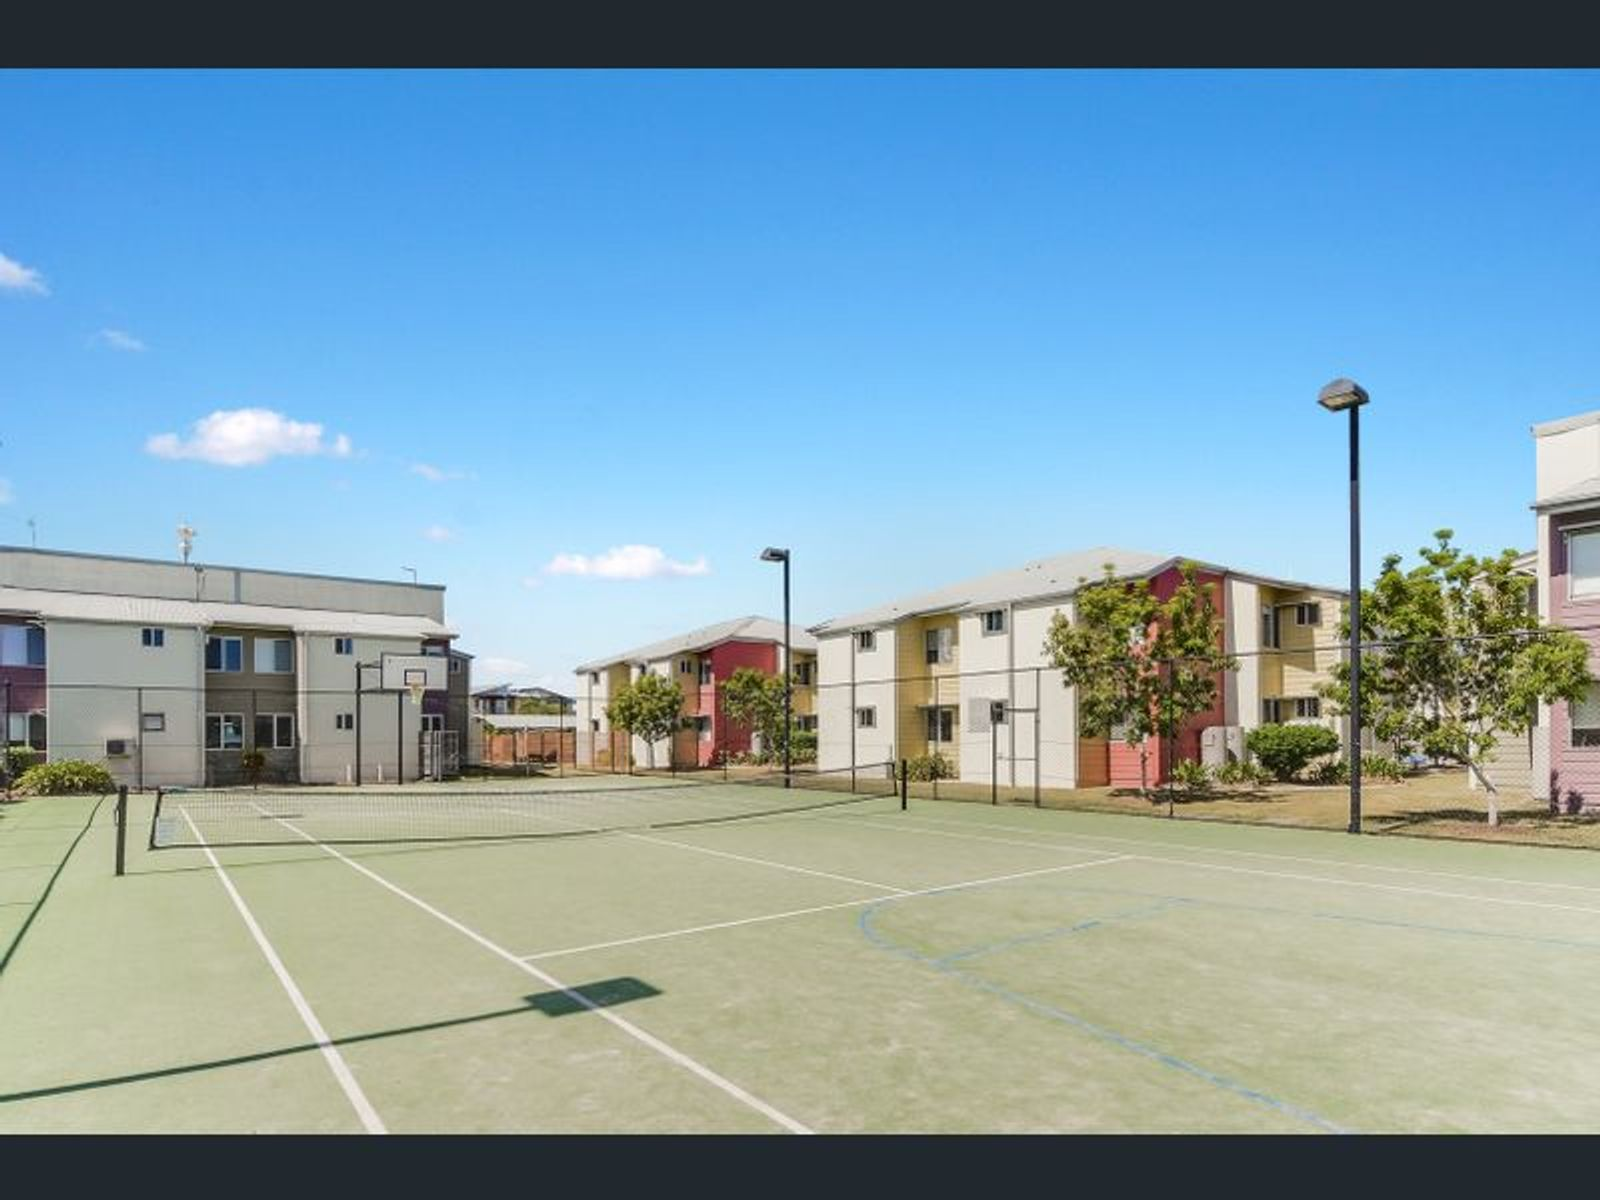 76/8 Varsityview Court, Sippy Downs, QLD 4556